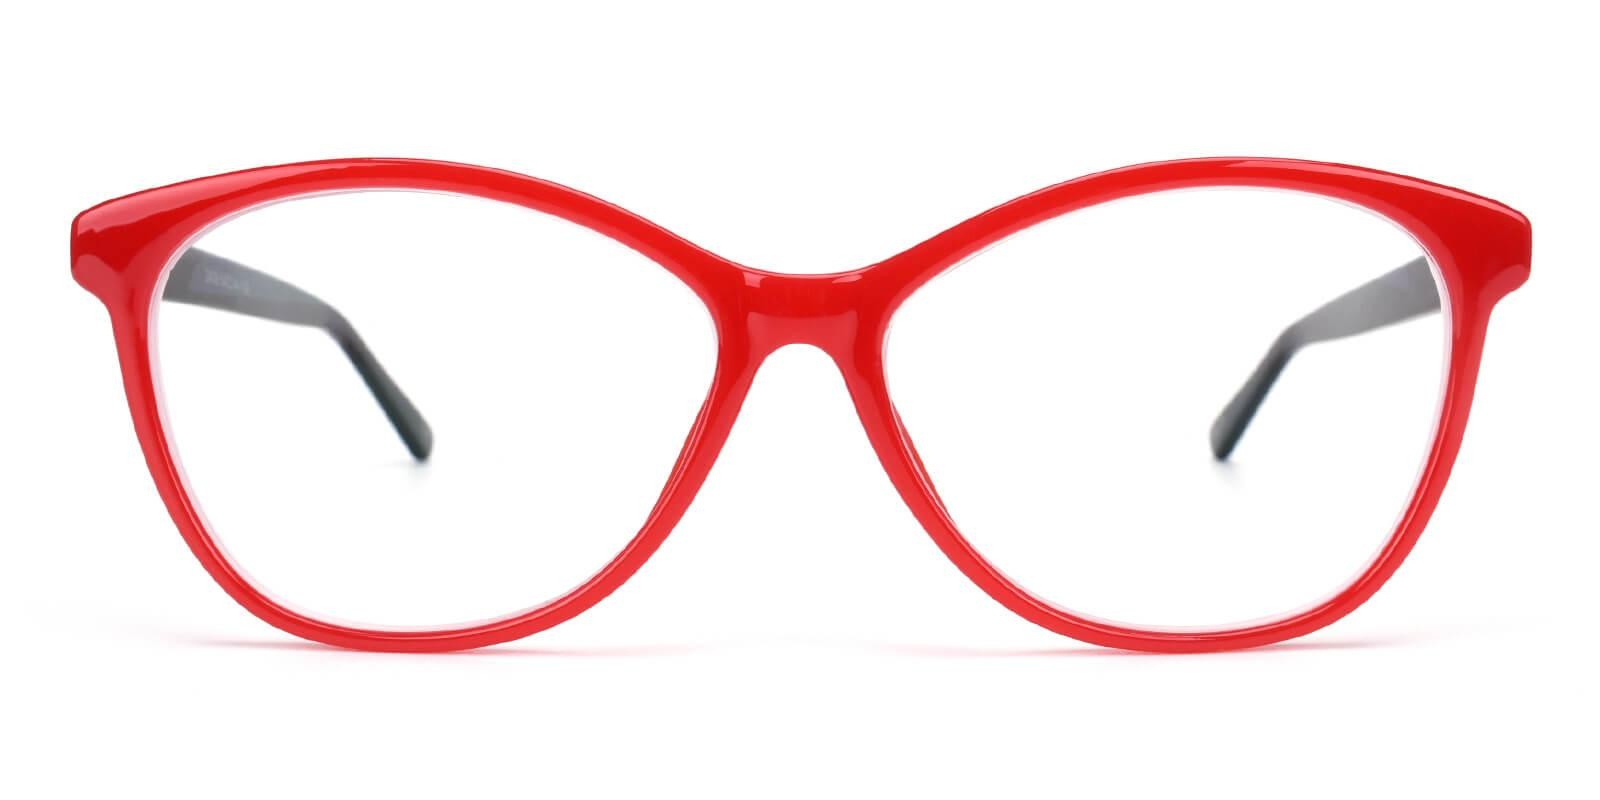 Netfertari-Red-Cat-Plastic-Eyeglasses-additional2